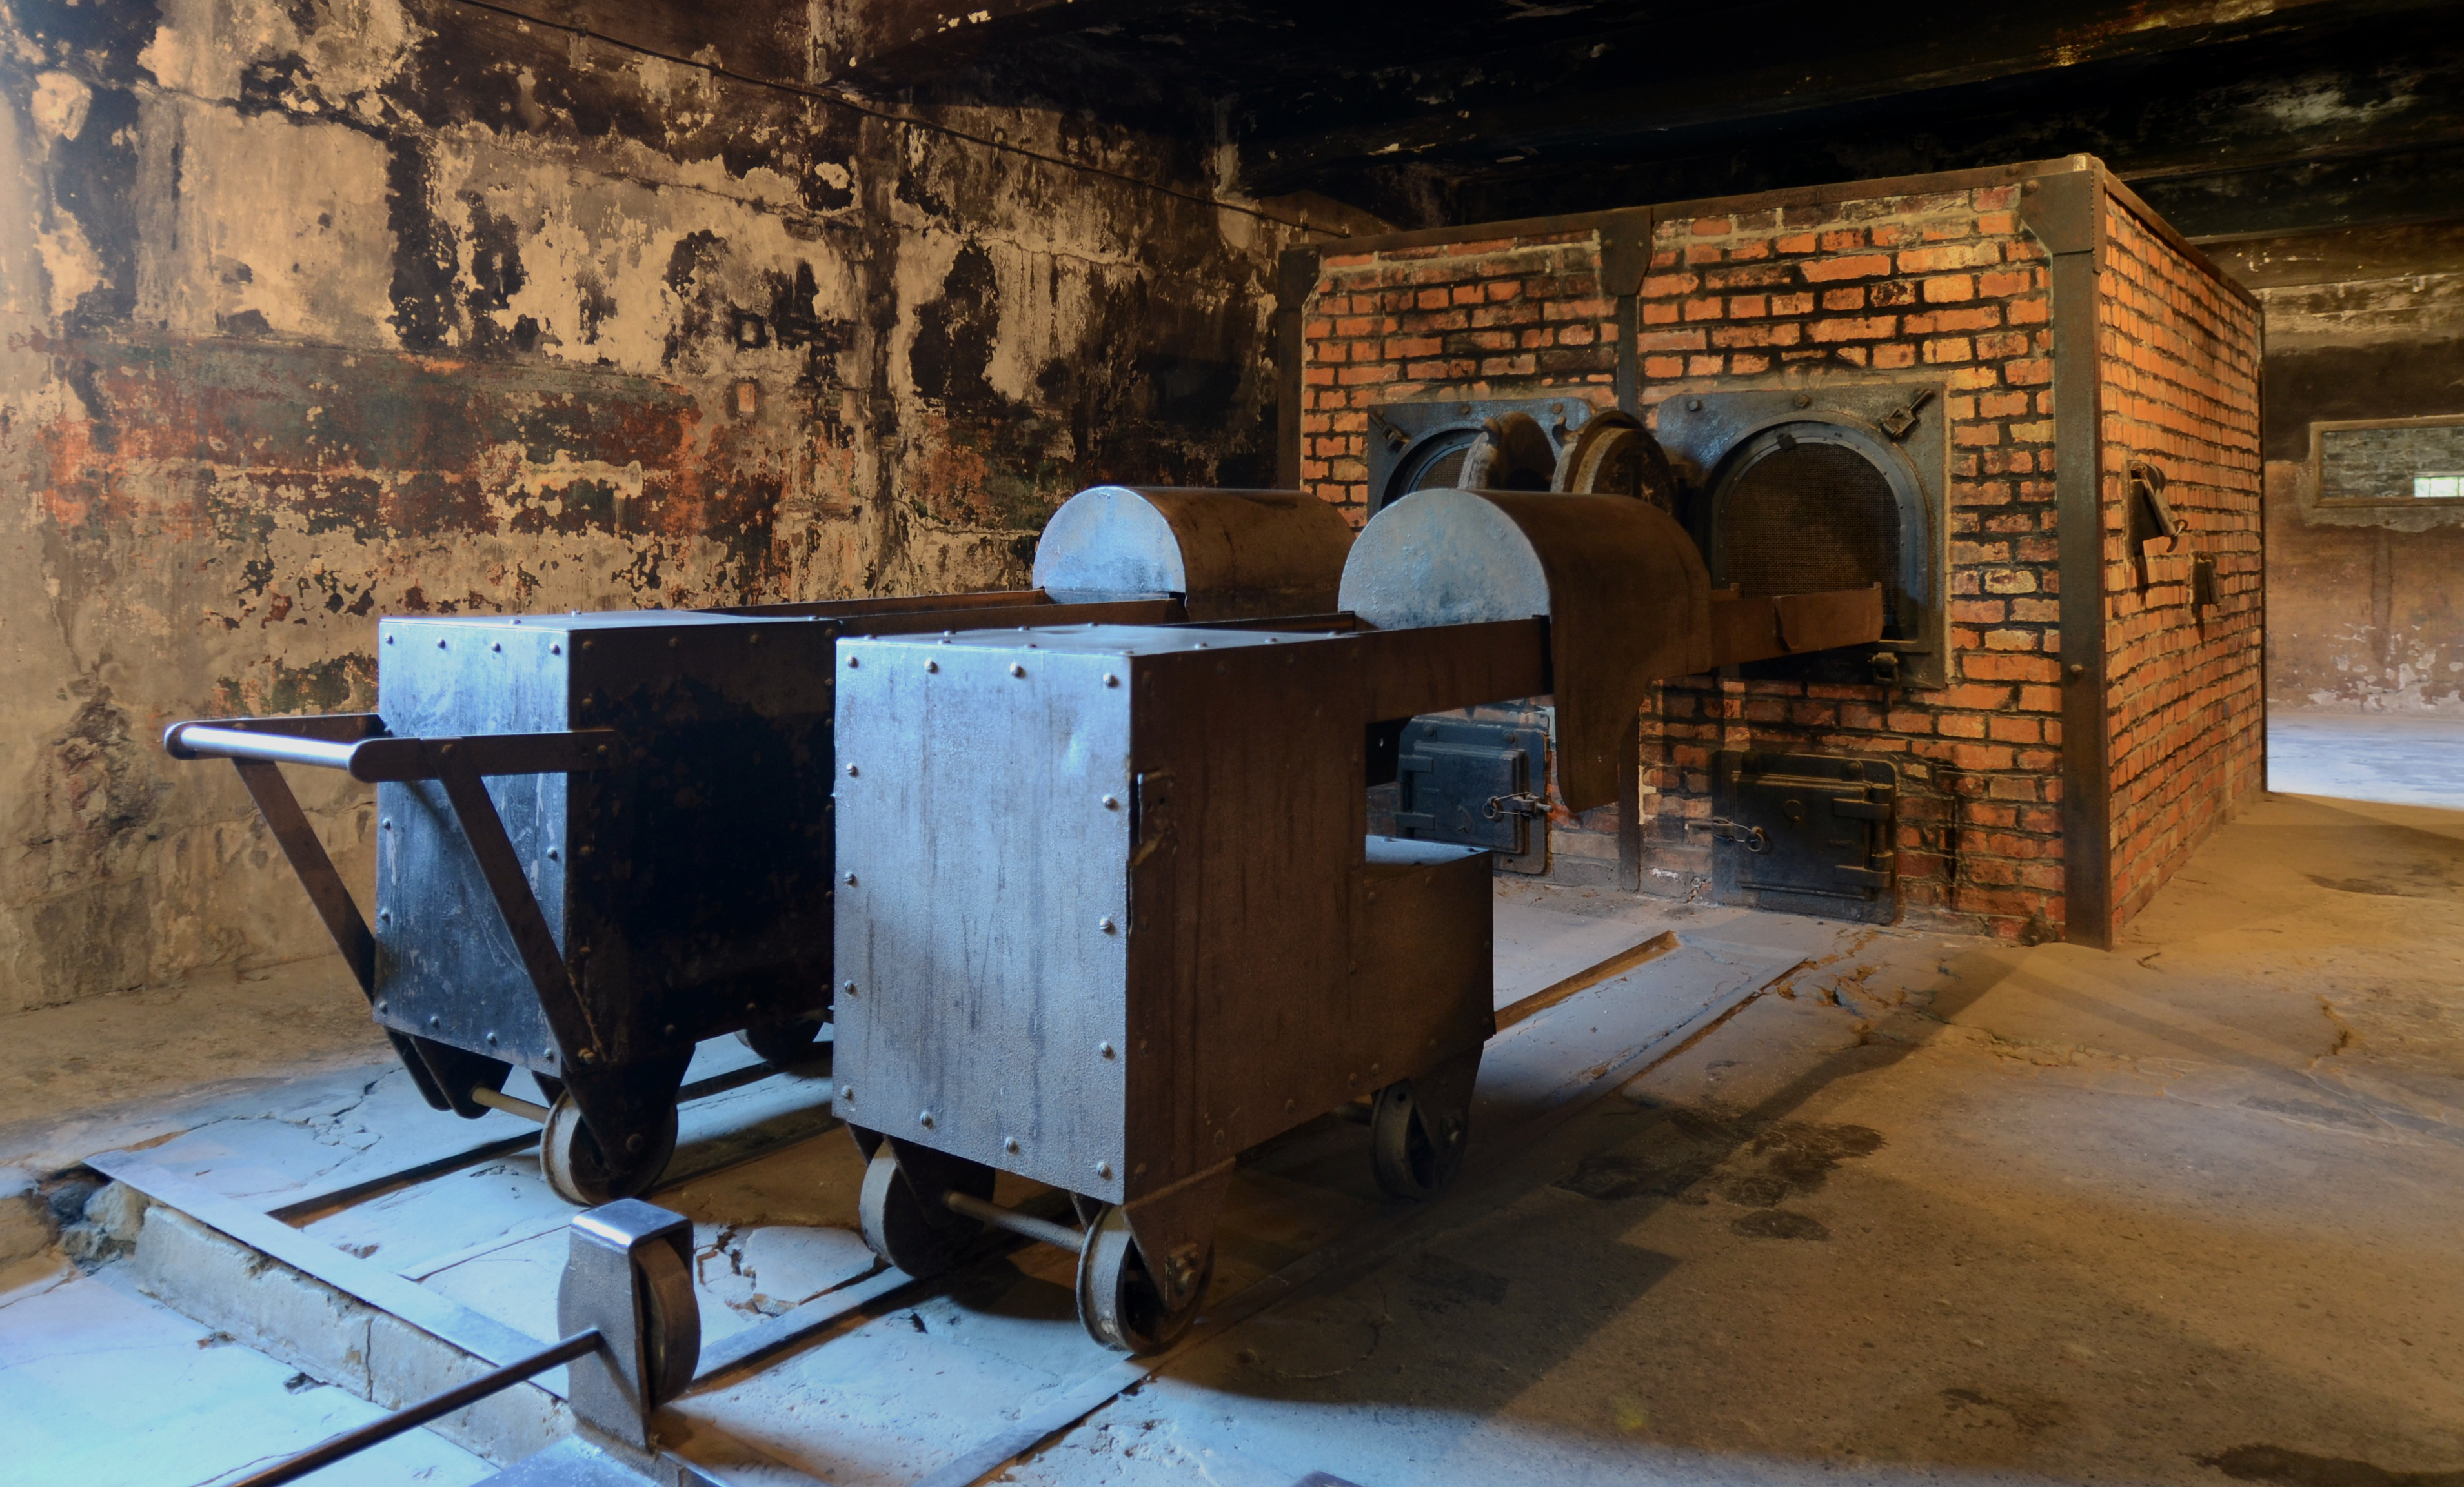 Crematorium at Auschwitz